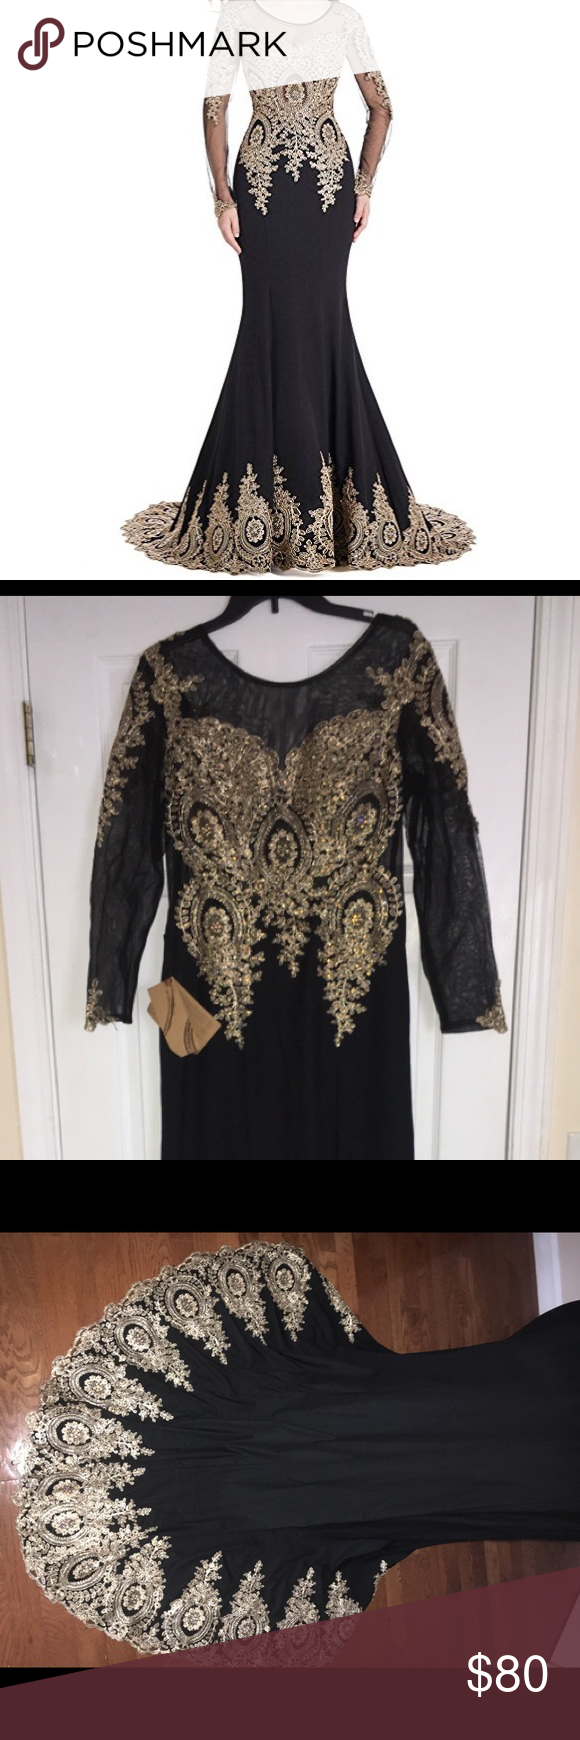 Black and gold long sleeved mermaid evening gown mermaid evening